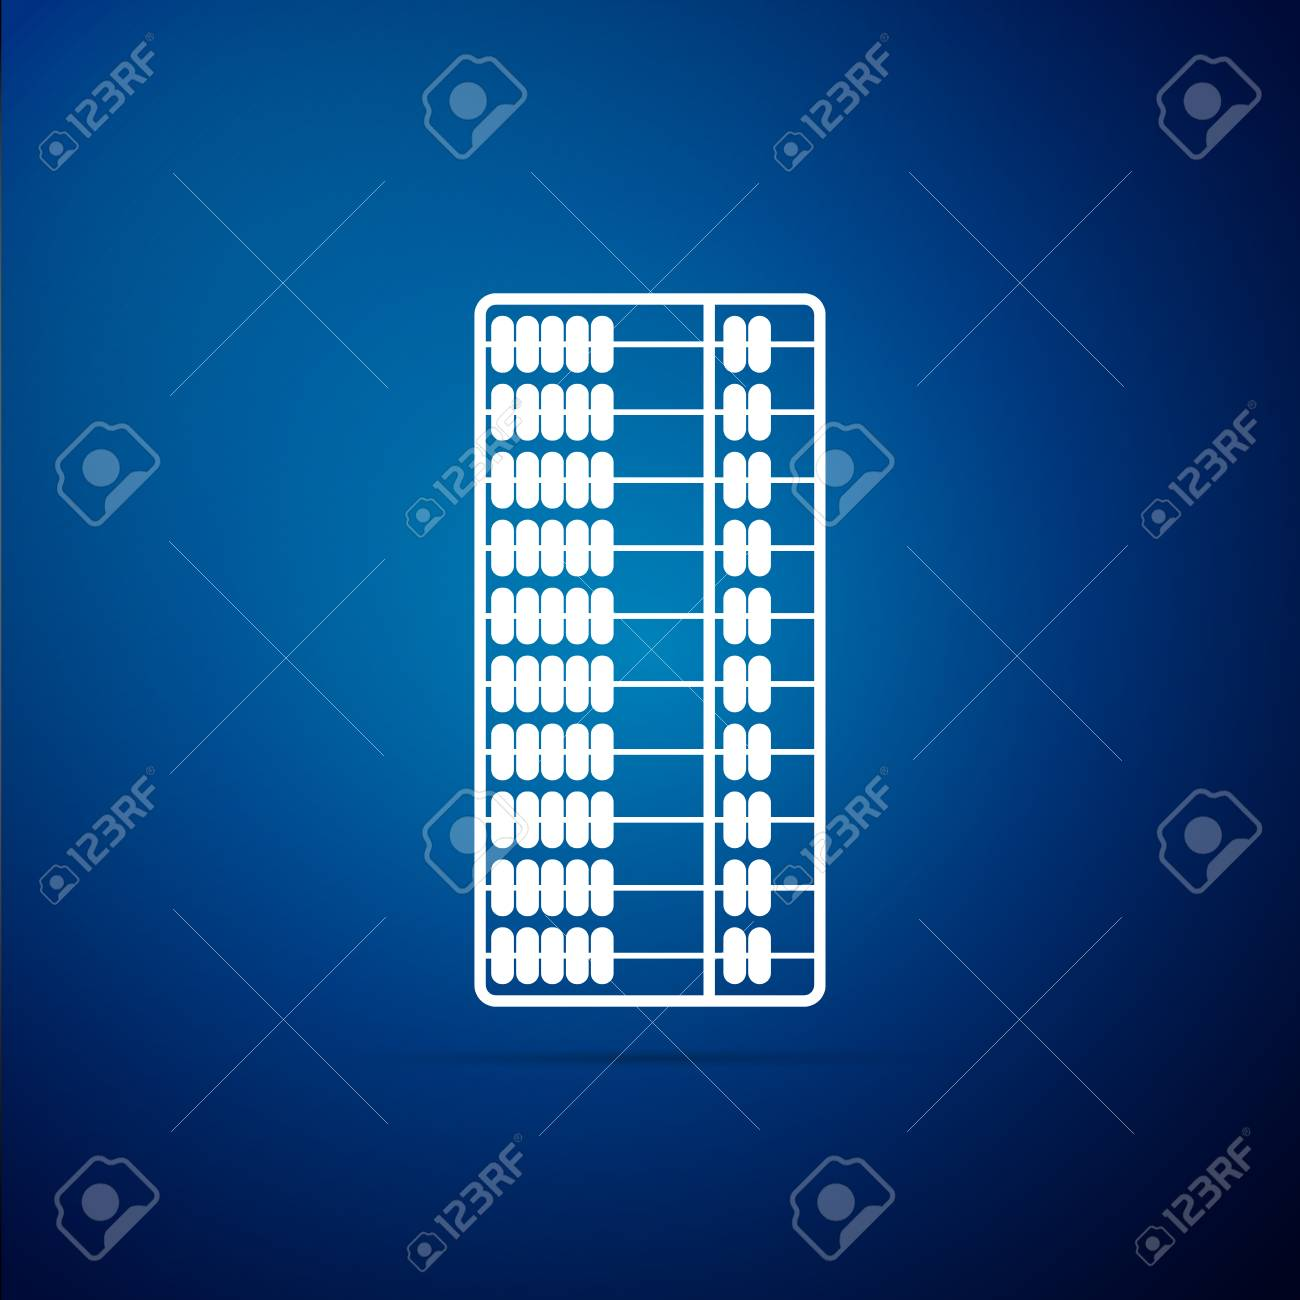 Abacus Icon Isolated On Blue Background Traditional Counting 1300x1300